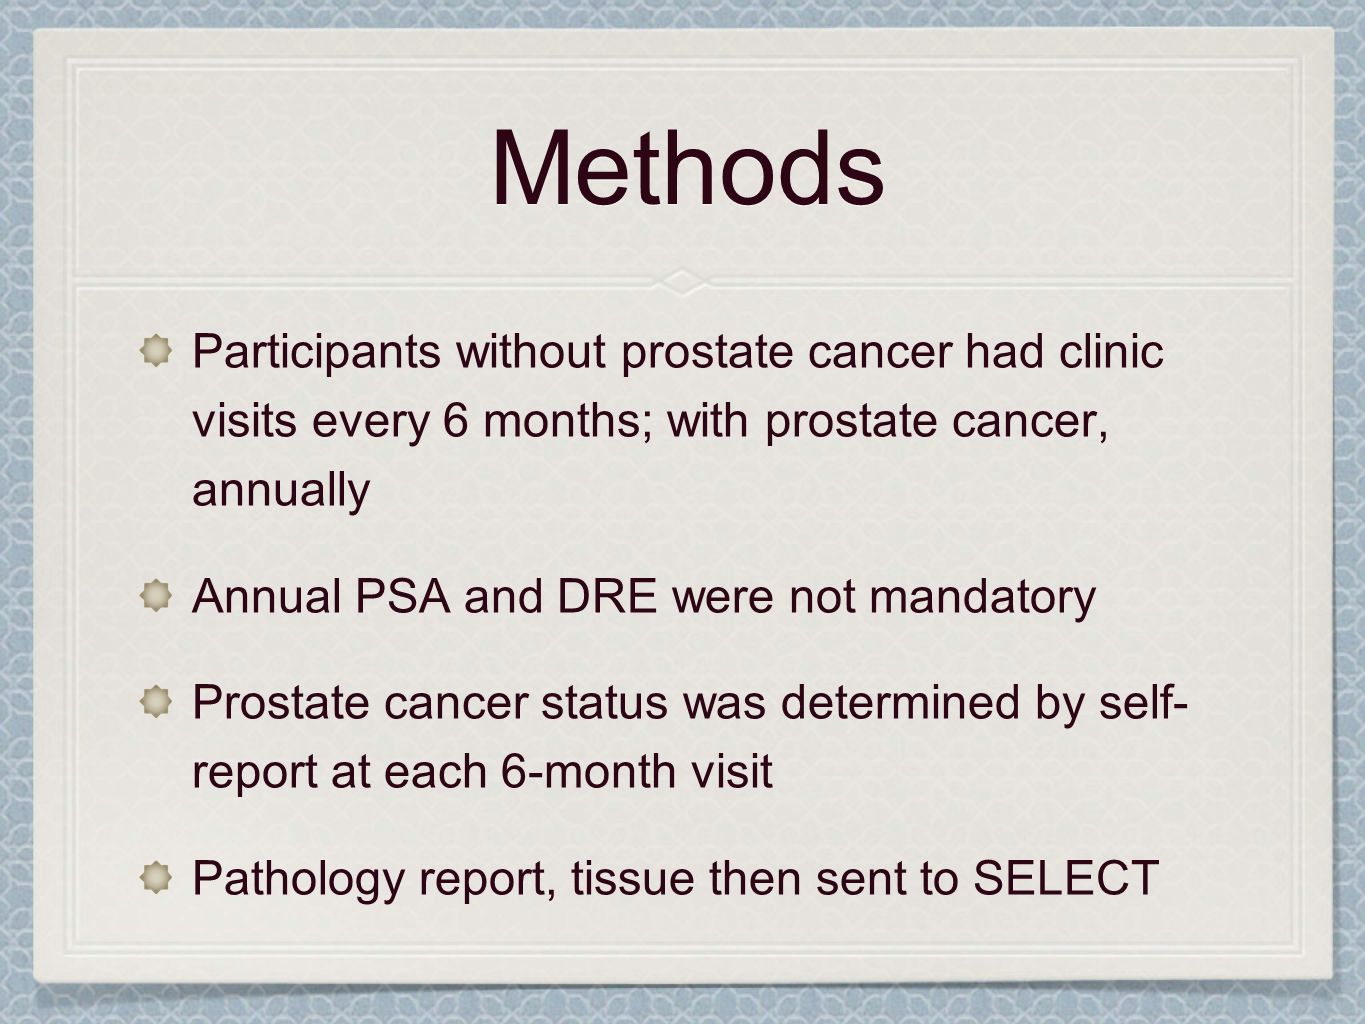 Methods Participants without prostate cancer had clinic visits every 6 months; with prostate cancer, annually.